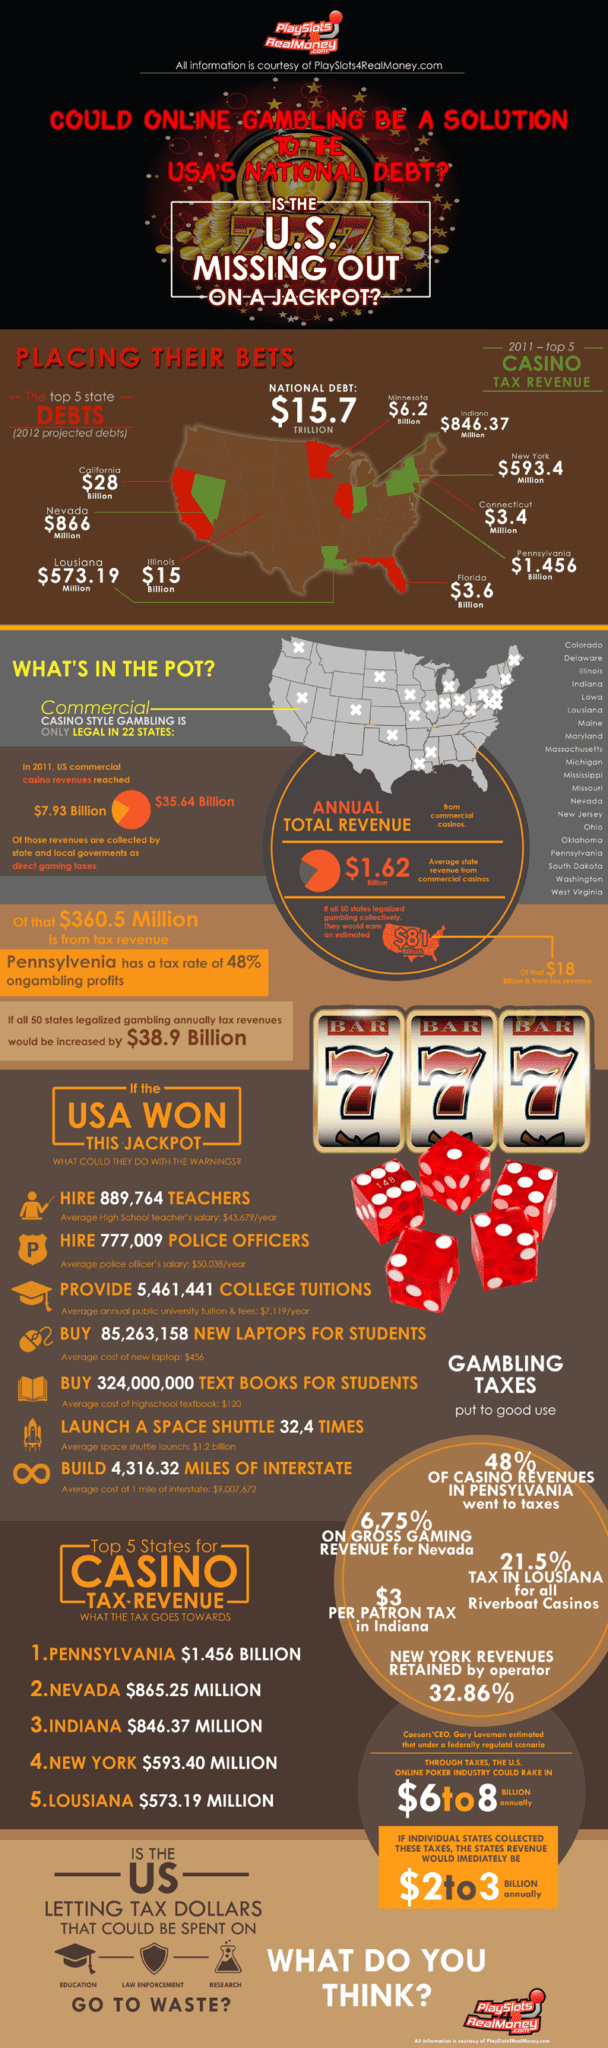 usa online casinos free play